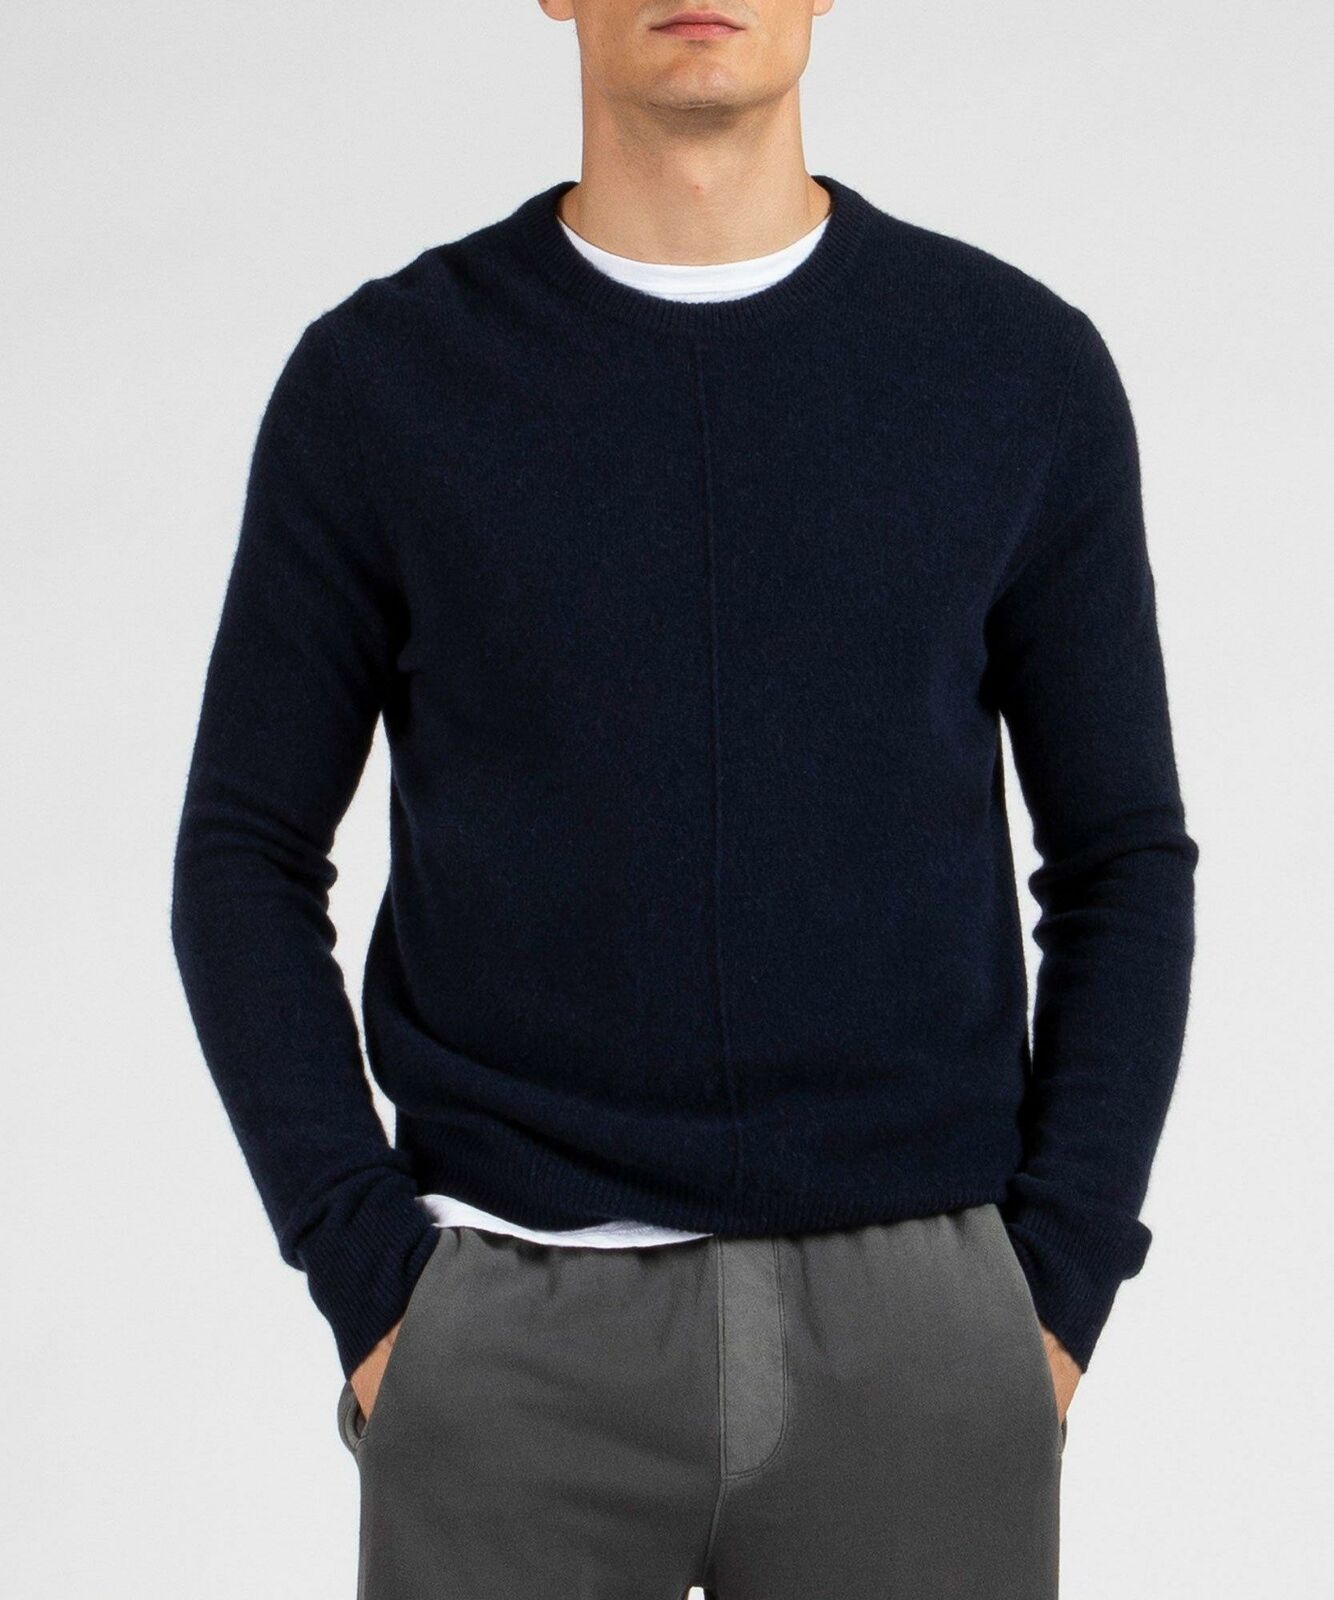 NEW ATM MIDNIGHT BLUE CASHMERE EXPOSED SEAM CREW NECK SWEATER SIZE 2XL